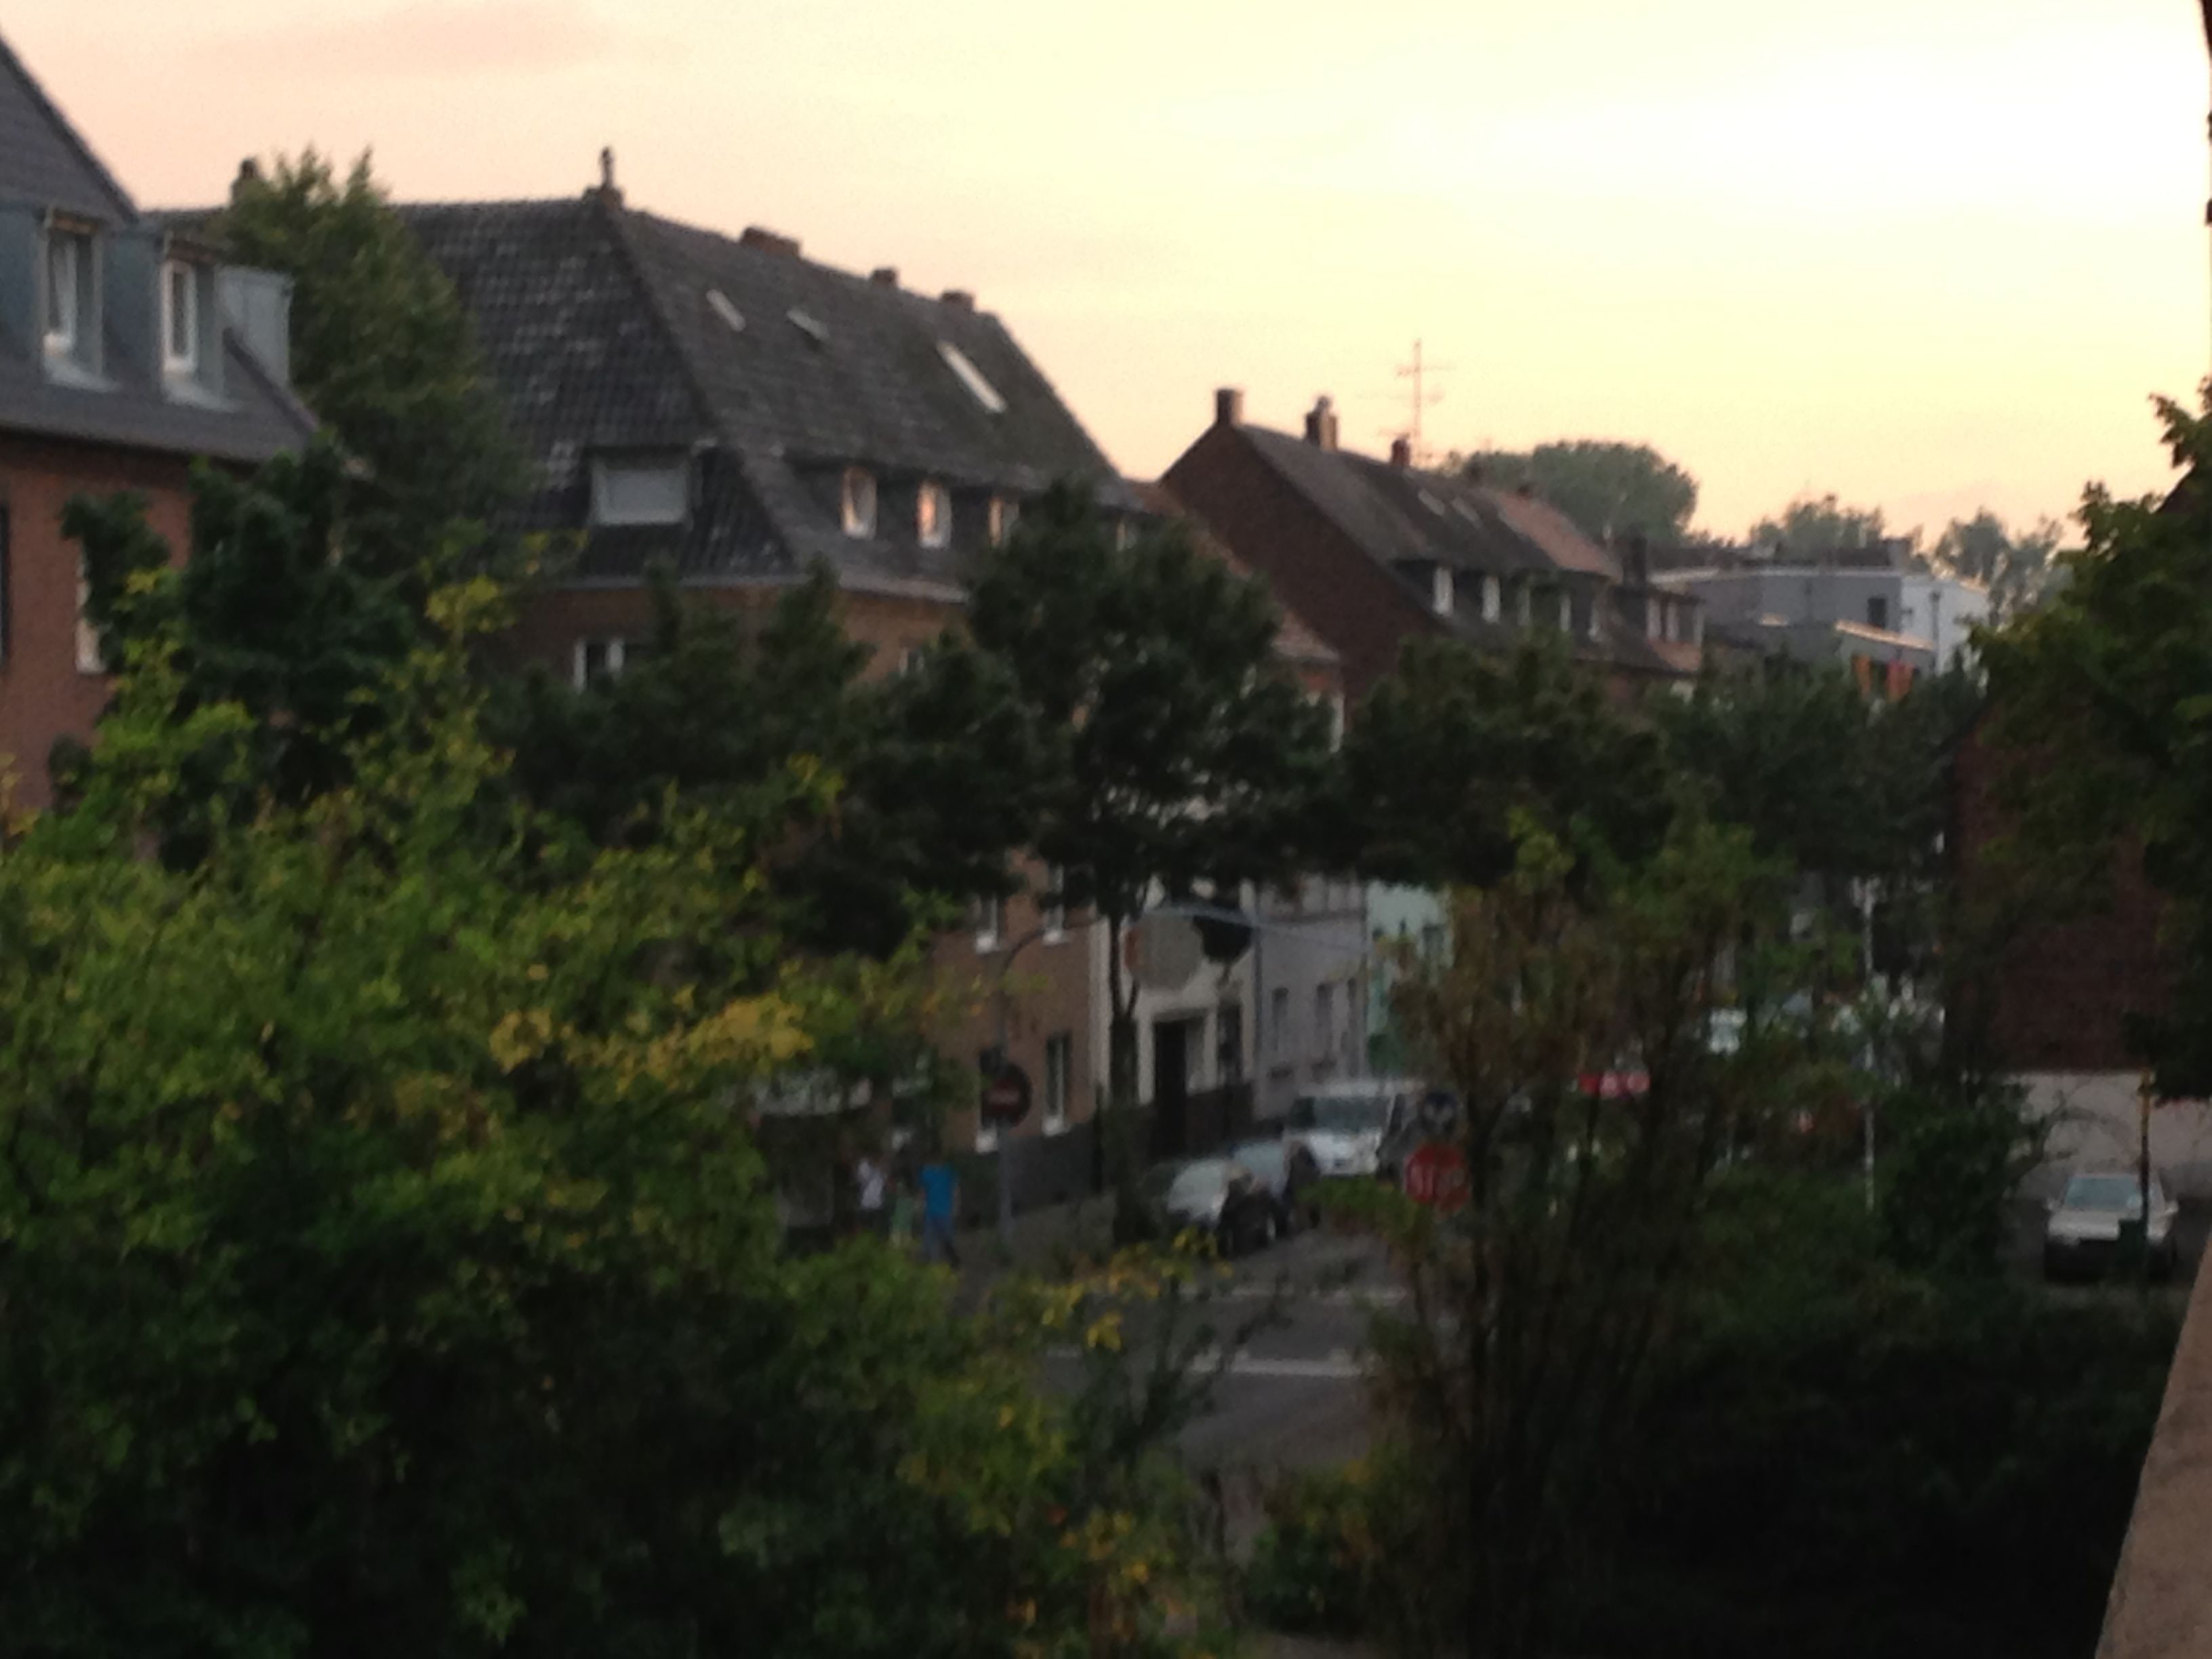 Duesseldorf Germany - Apartment View